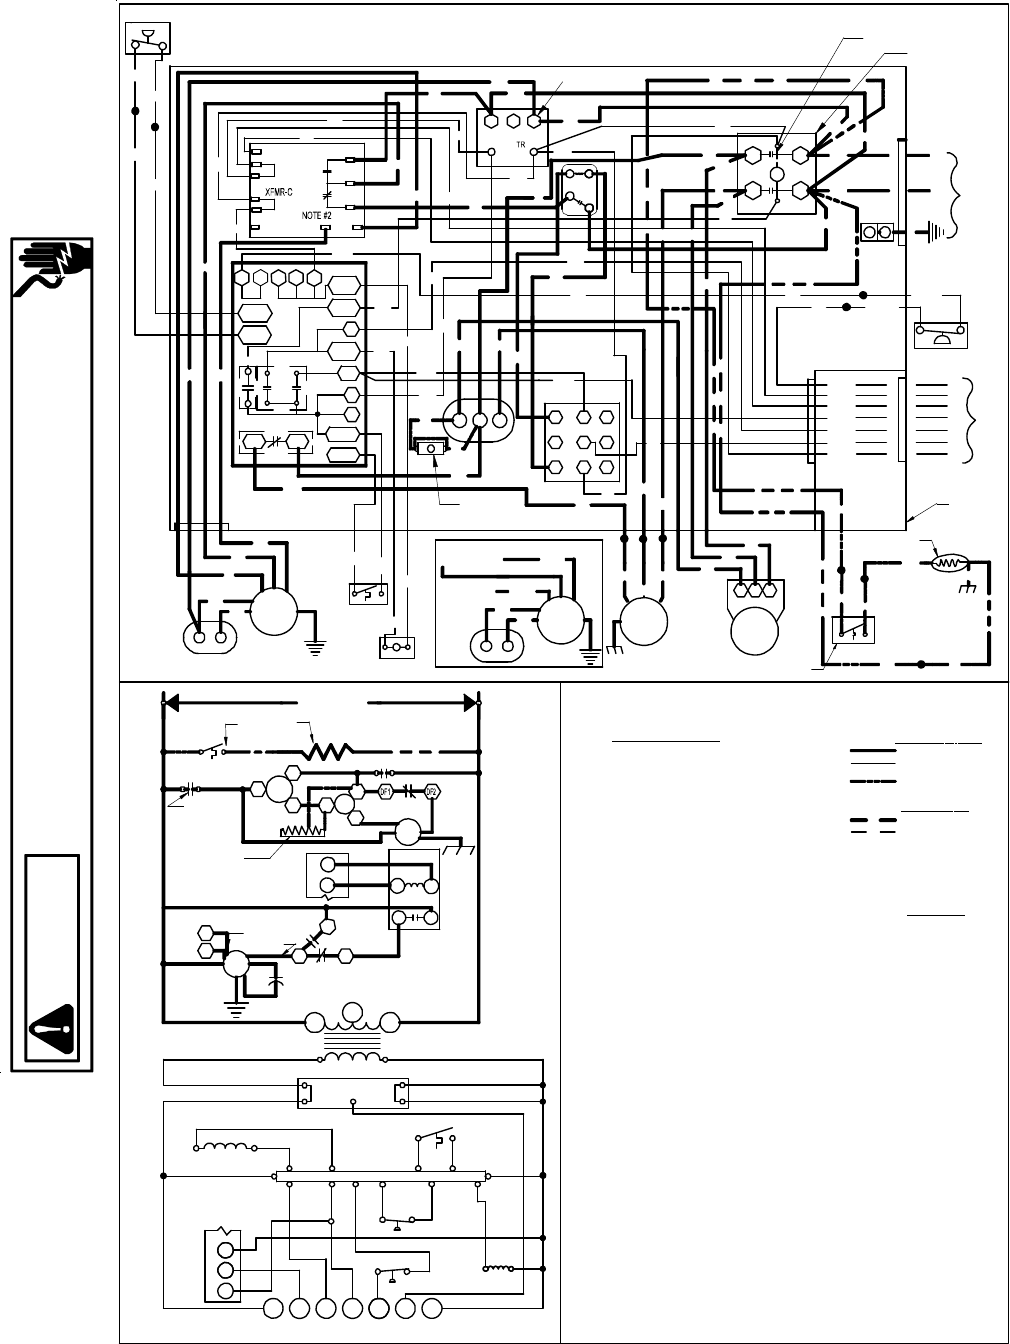 935372 Diagrams Of Fuel Bowl Housing additionally How Do I Connect My Whole House Humidifier To My Furnace besides Worcester Boiler Wiring Diagram  bi moreover Troubleshoot Constant Call For Heat further Rt6332013r1. on heating thermostat wiring